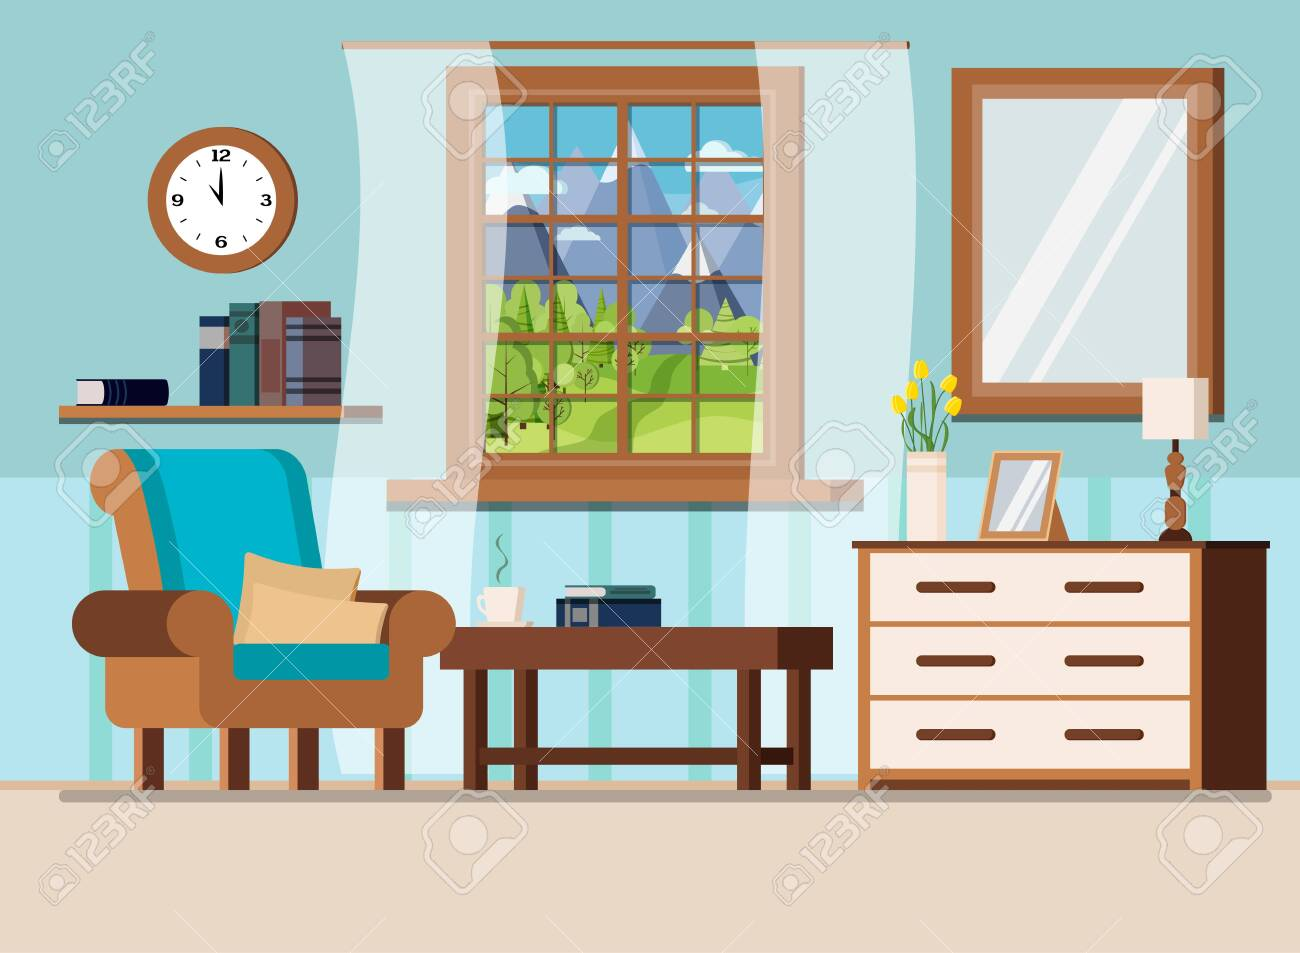 Cozy Home Interior Background With Coffee Table Lamp Armchair Royalty Free Cliparts Vectors And Stock Illustration Image 125016294